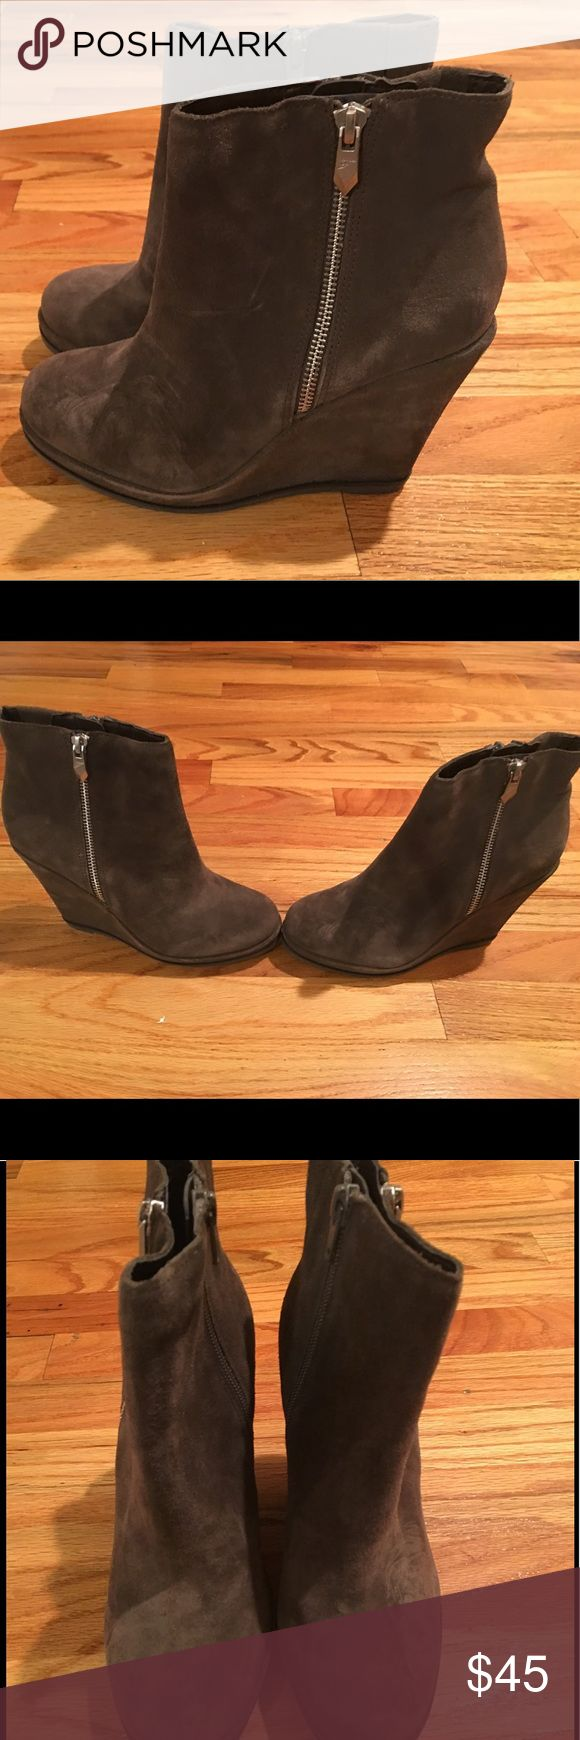 Fergie Booties Size 7M Wedge High Heel Booties Gray wedge high heel side zippered sueded bodies by Fergie; Size 7M- leather upper balance man made materials; New without Box Fergie Shoes Ankle Boots & Booties